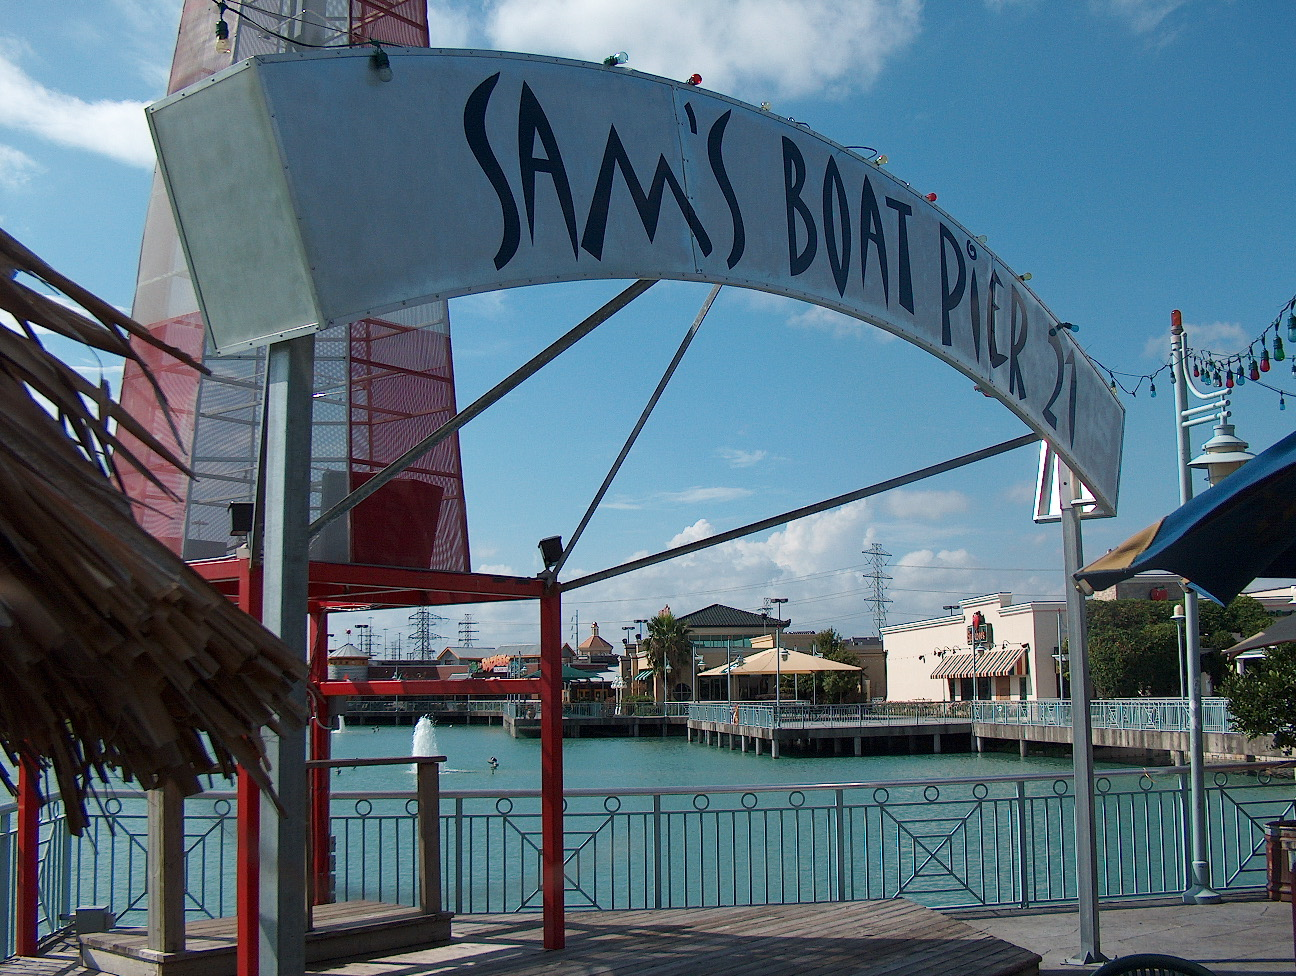 Sam's Boat Sign